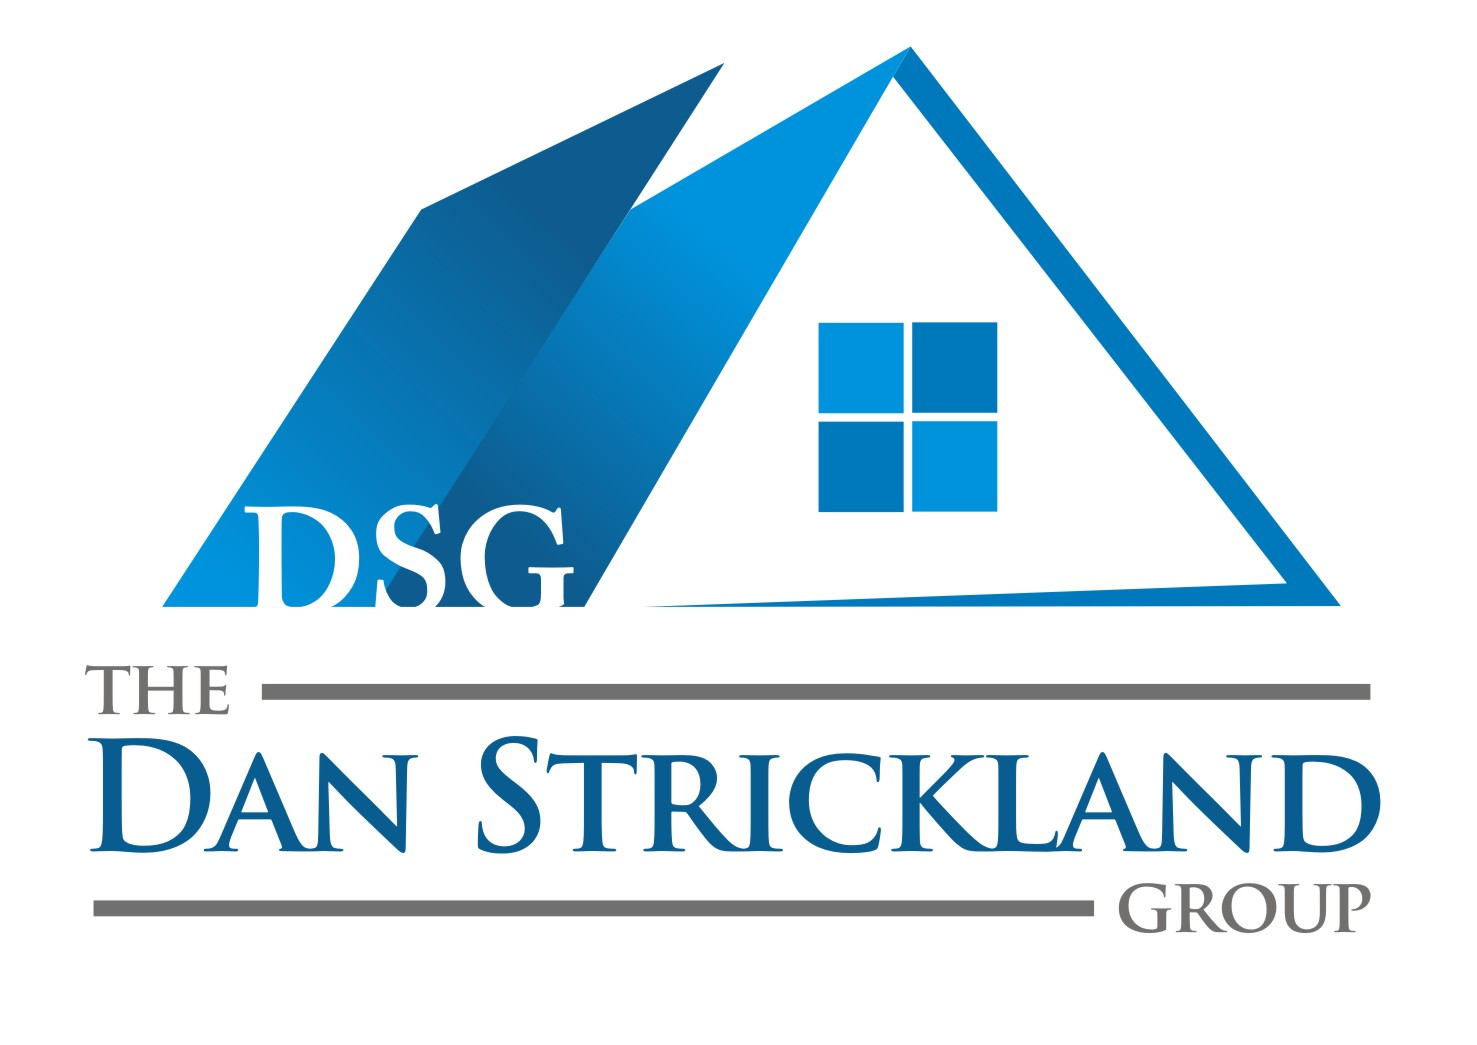 Logo Design by Arief Zuhud Romdhon - Entry No. 256 in the Logo Design Contest Creative Logo Design for The Dan Strickland Group.